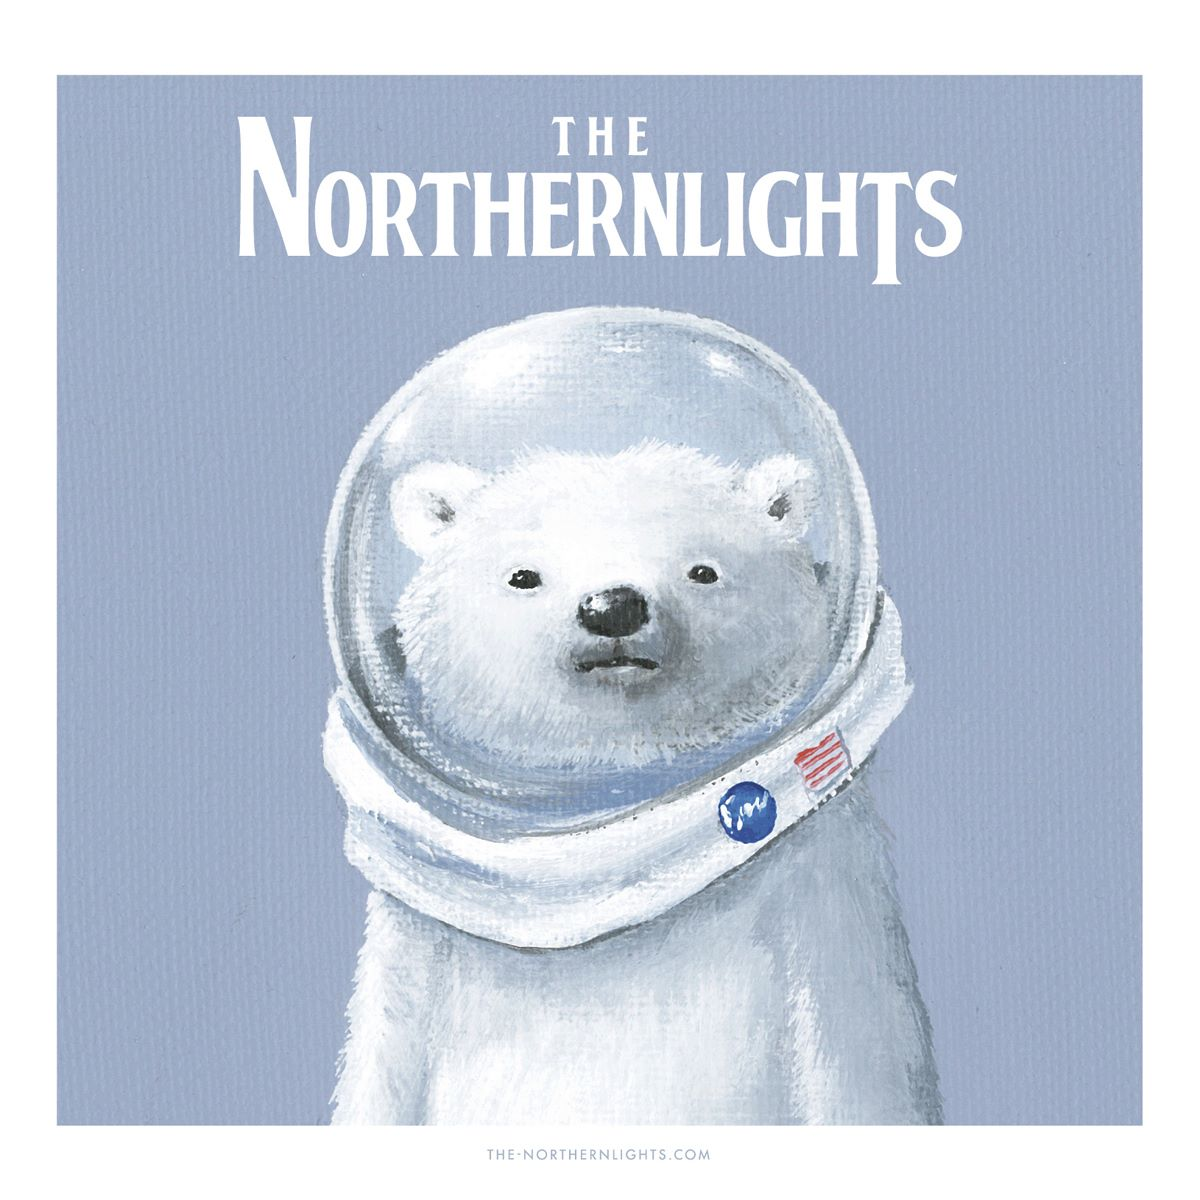 THE NORTHERNLIGHTS